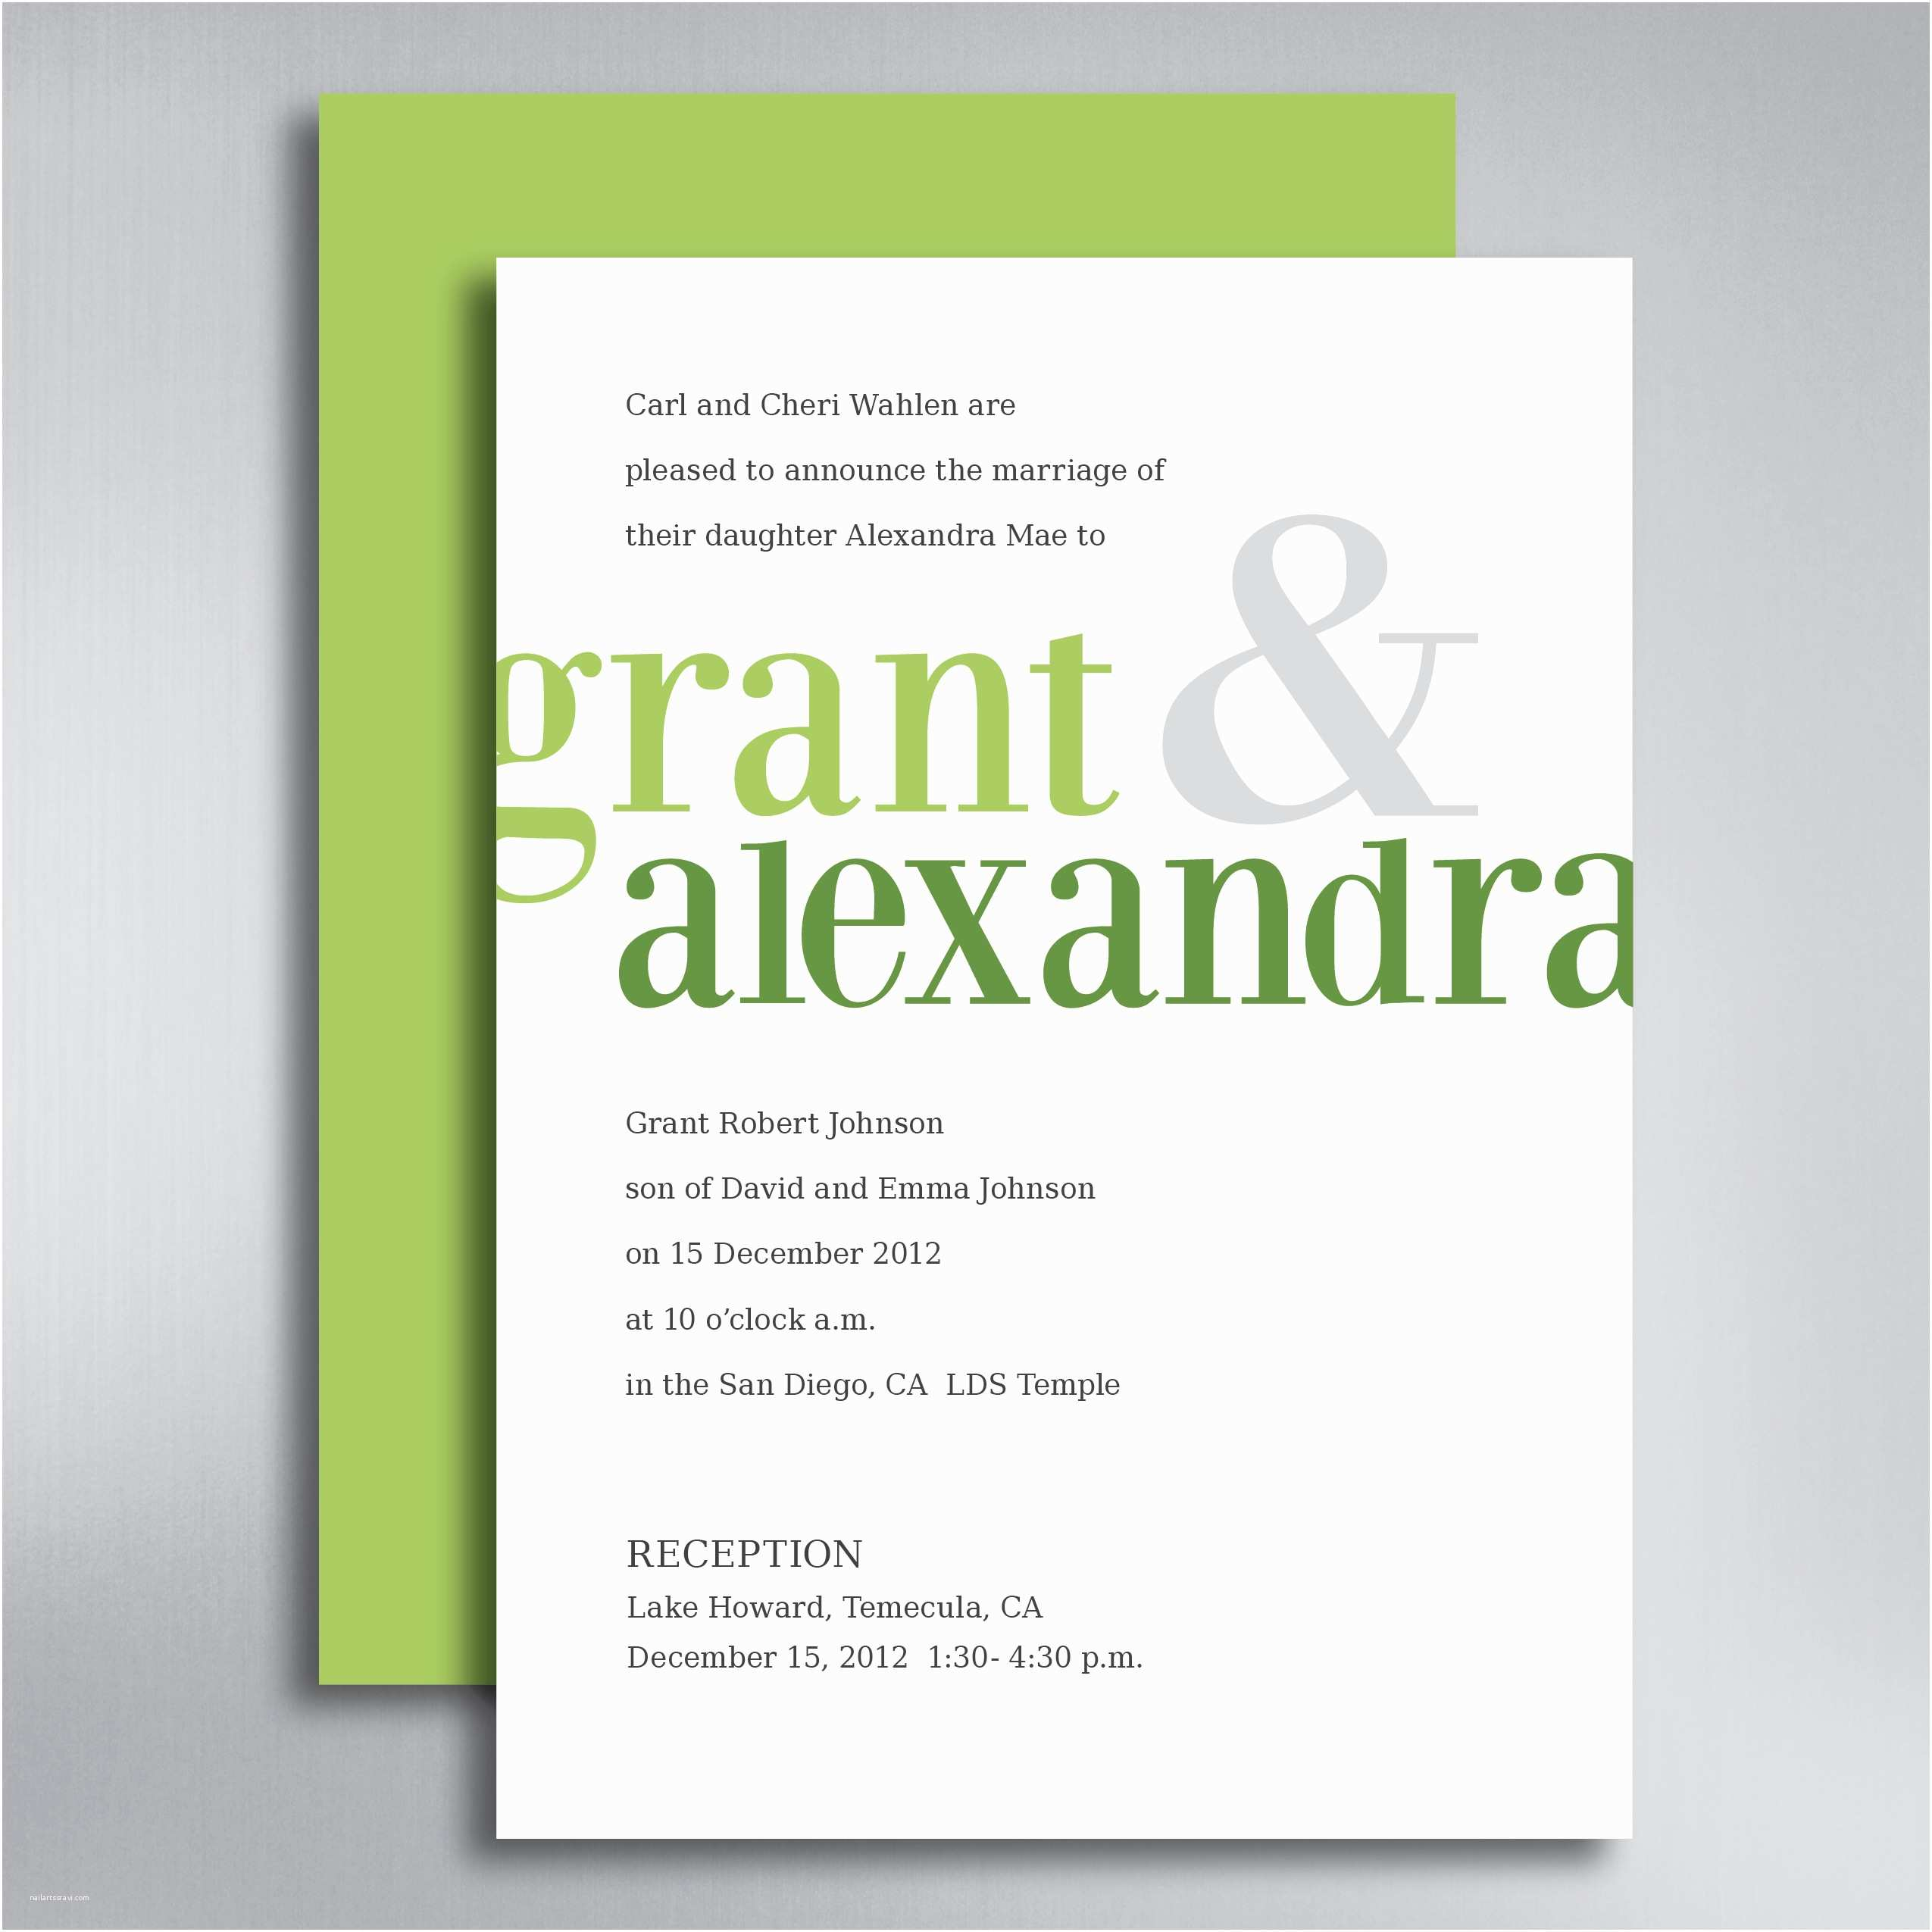 Best Place for Wedding Invitations Best Wedding Invitations Free